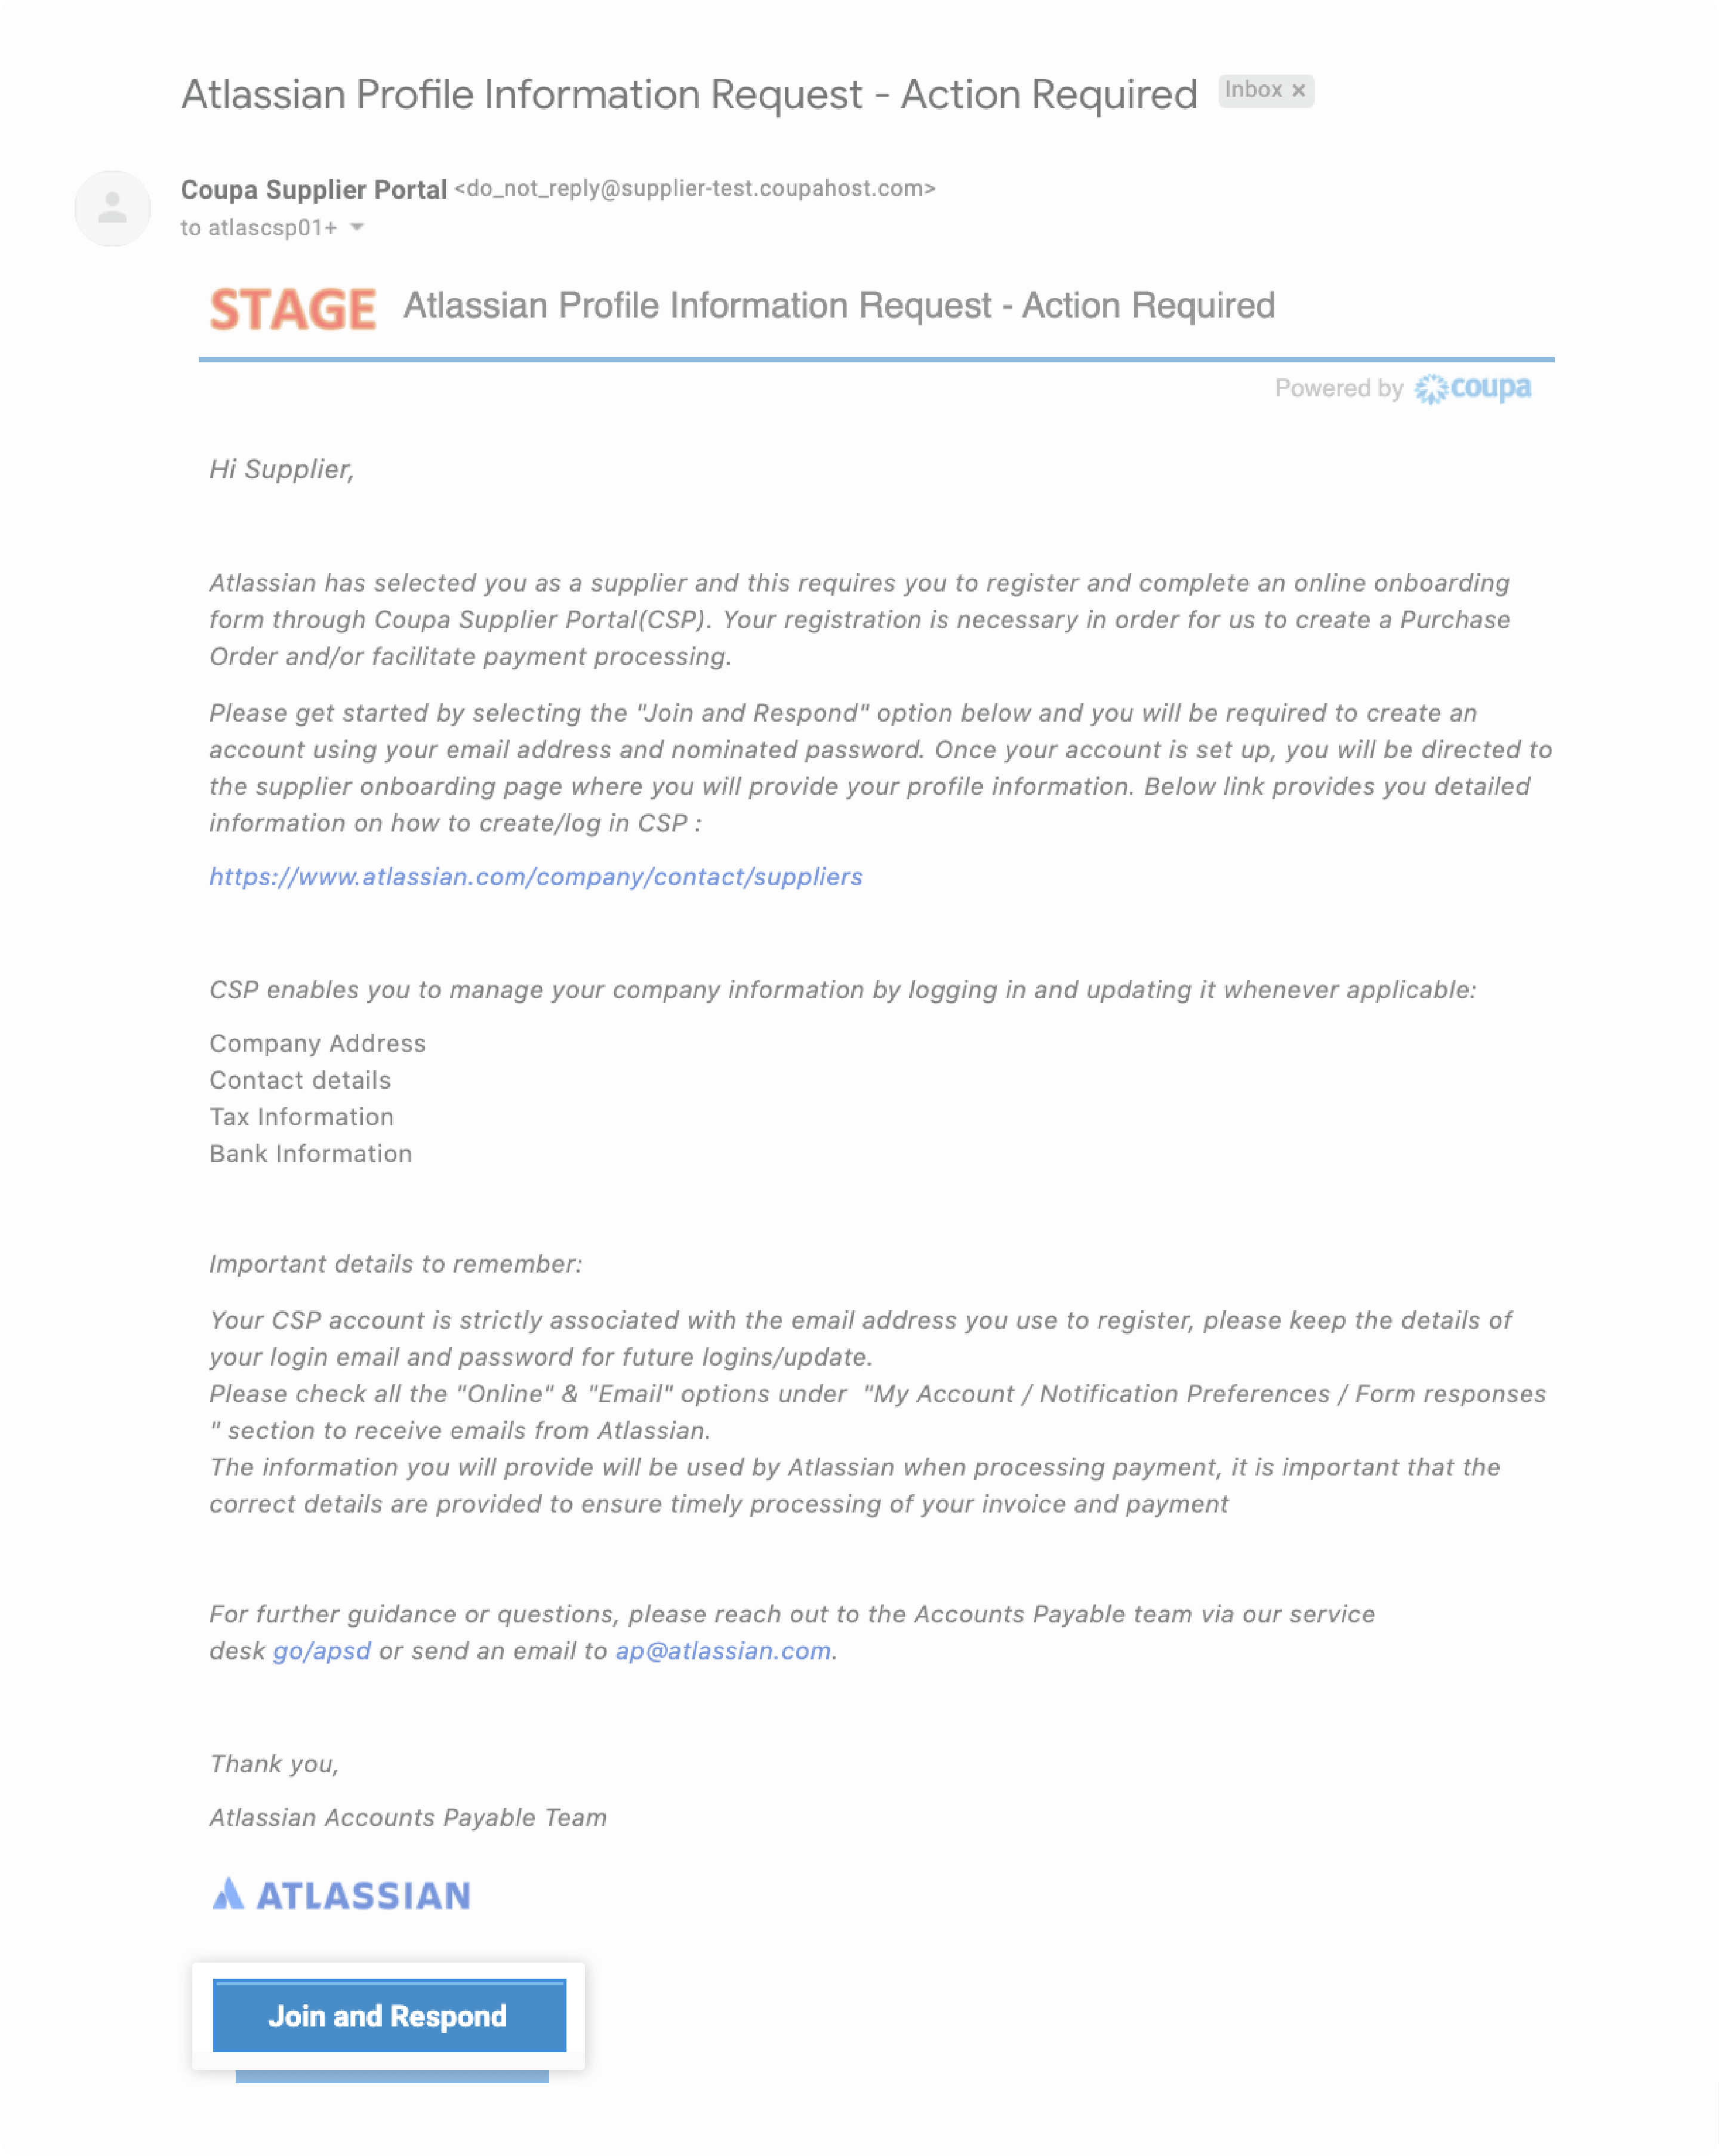 Atlassian Profile Information Request Action Required email